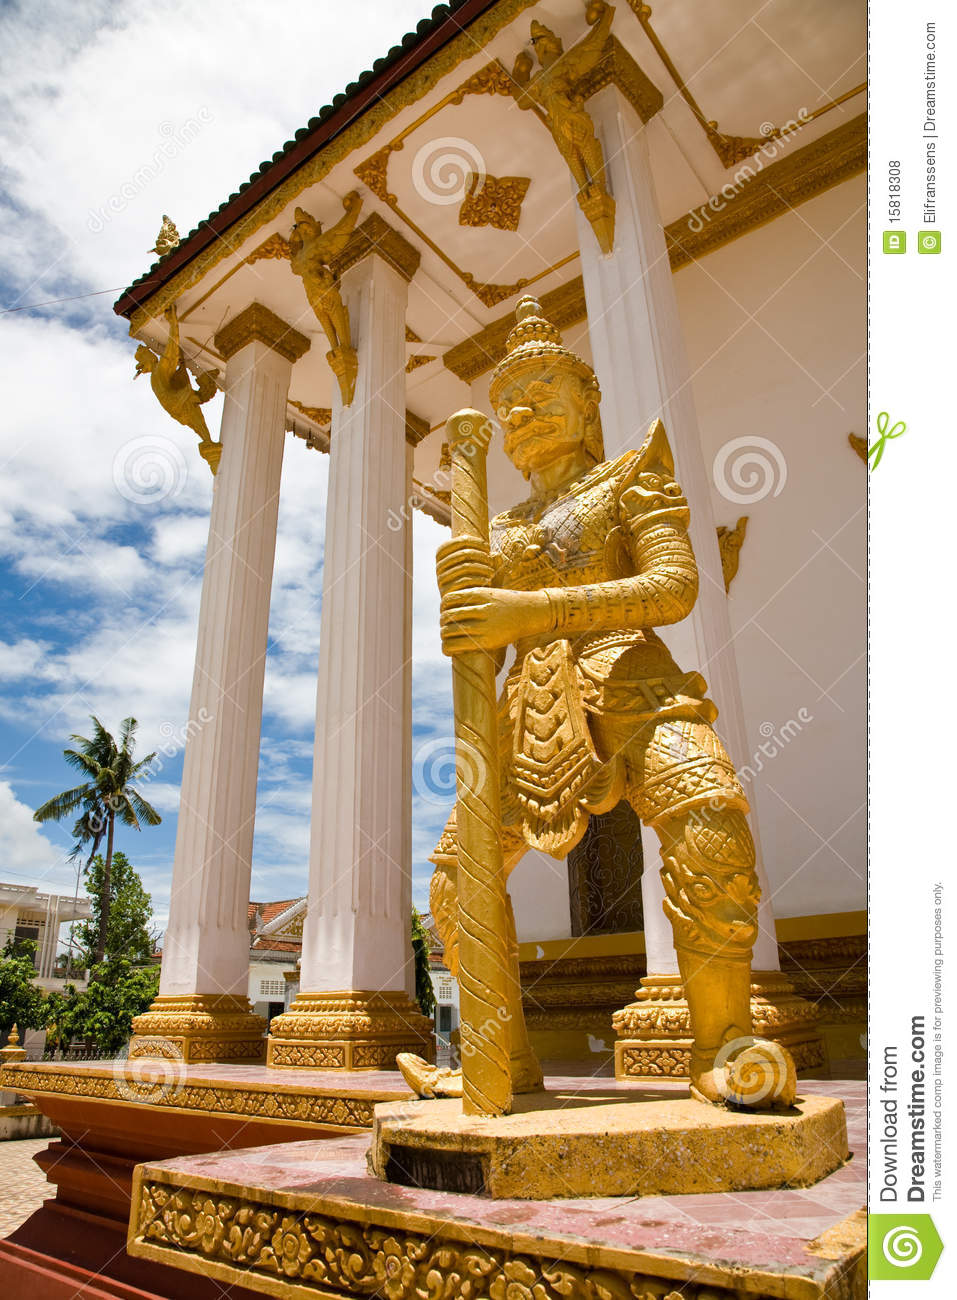 Art E Decoration Buddhist Temple, Battambang, Cambodia Stock Photo - Image